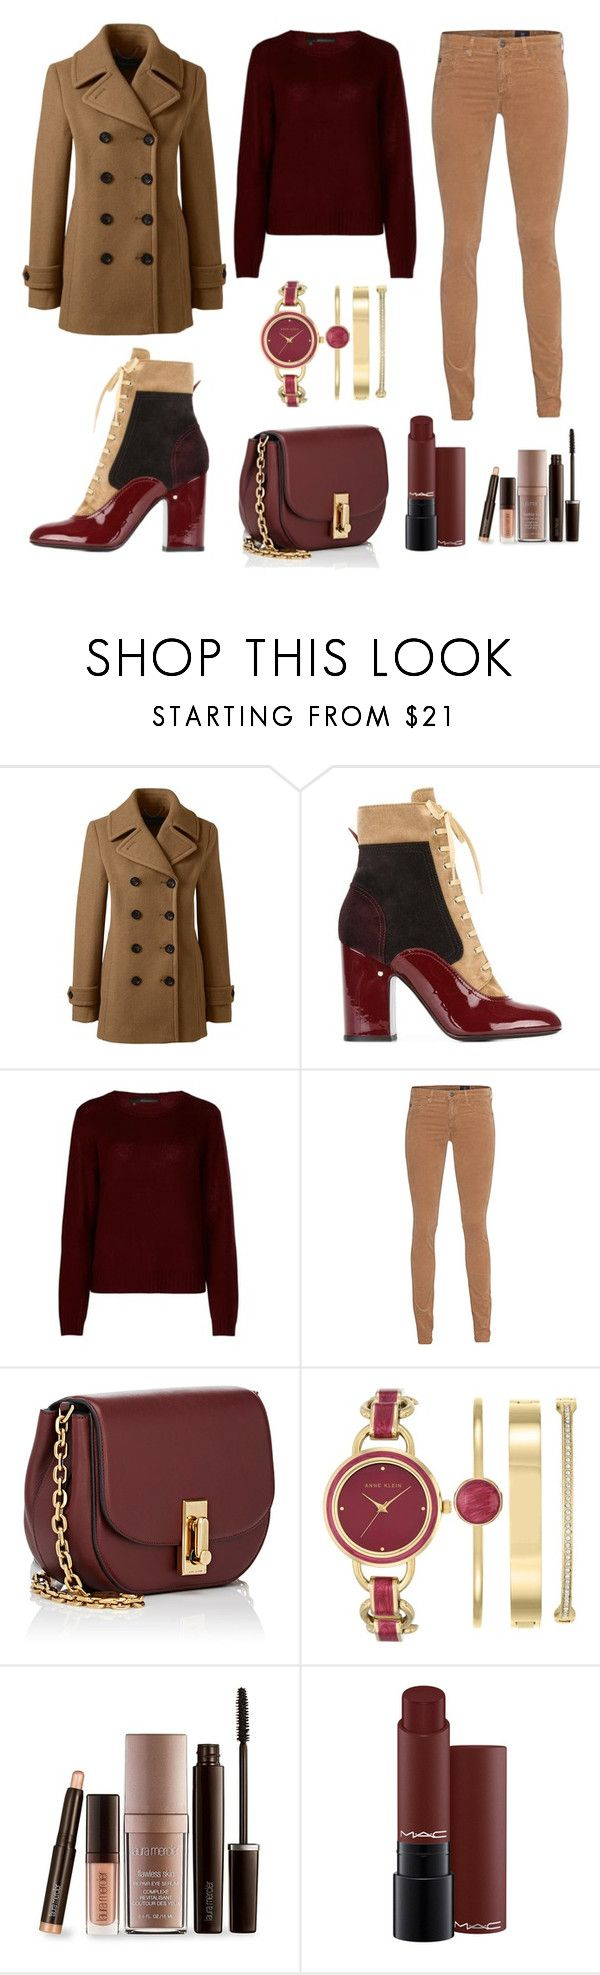 """Warm mix of colours!!!"" by giovanna-222 on Polyvore featuring Lands' End, Laurence Dacade, 360cashmere, AG Adriano Goldschmied, Marc Jacobs, Anne Klein and Laura Mercier"